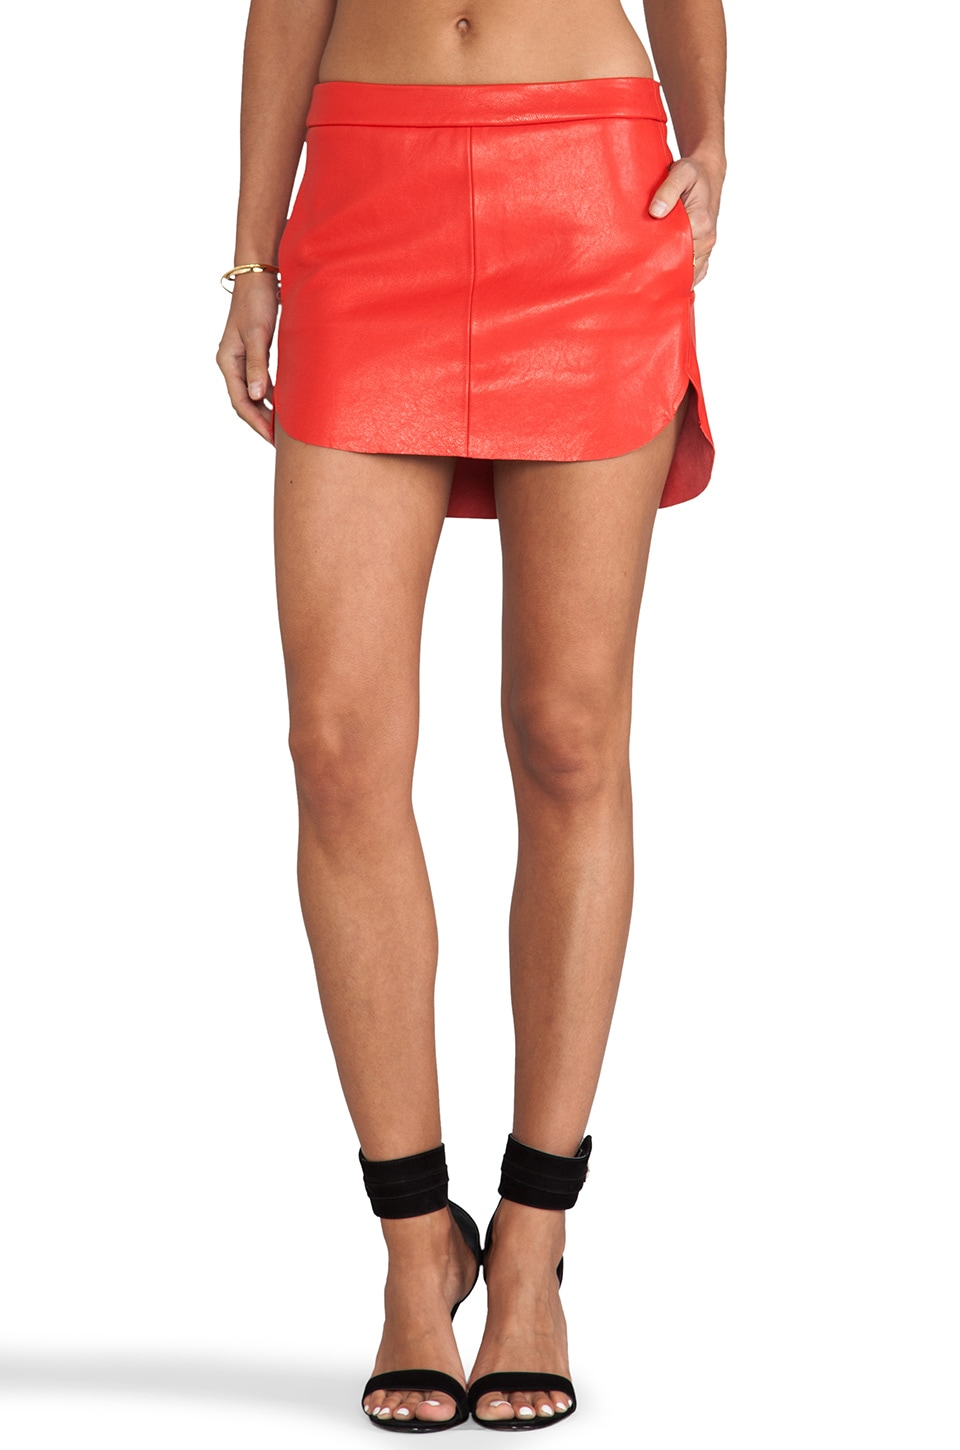 Mason by Michelle Mason Mini Skirt in Red